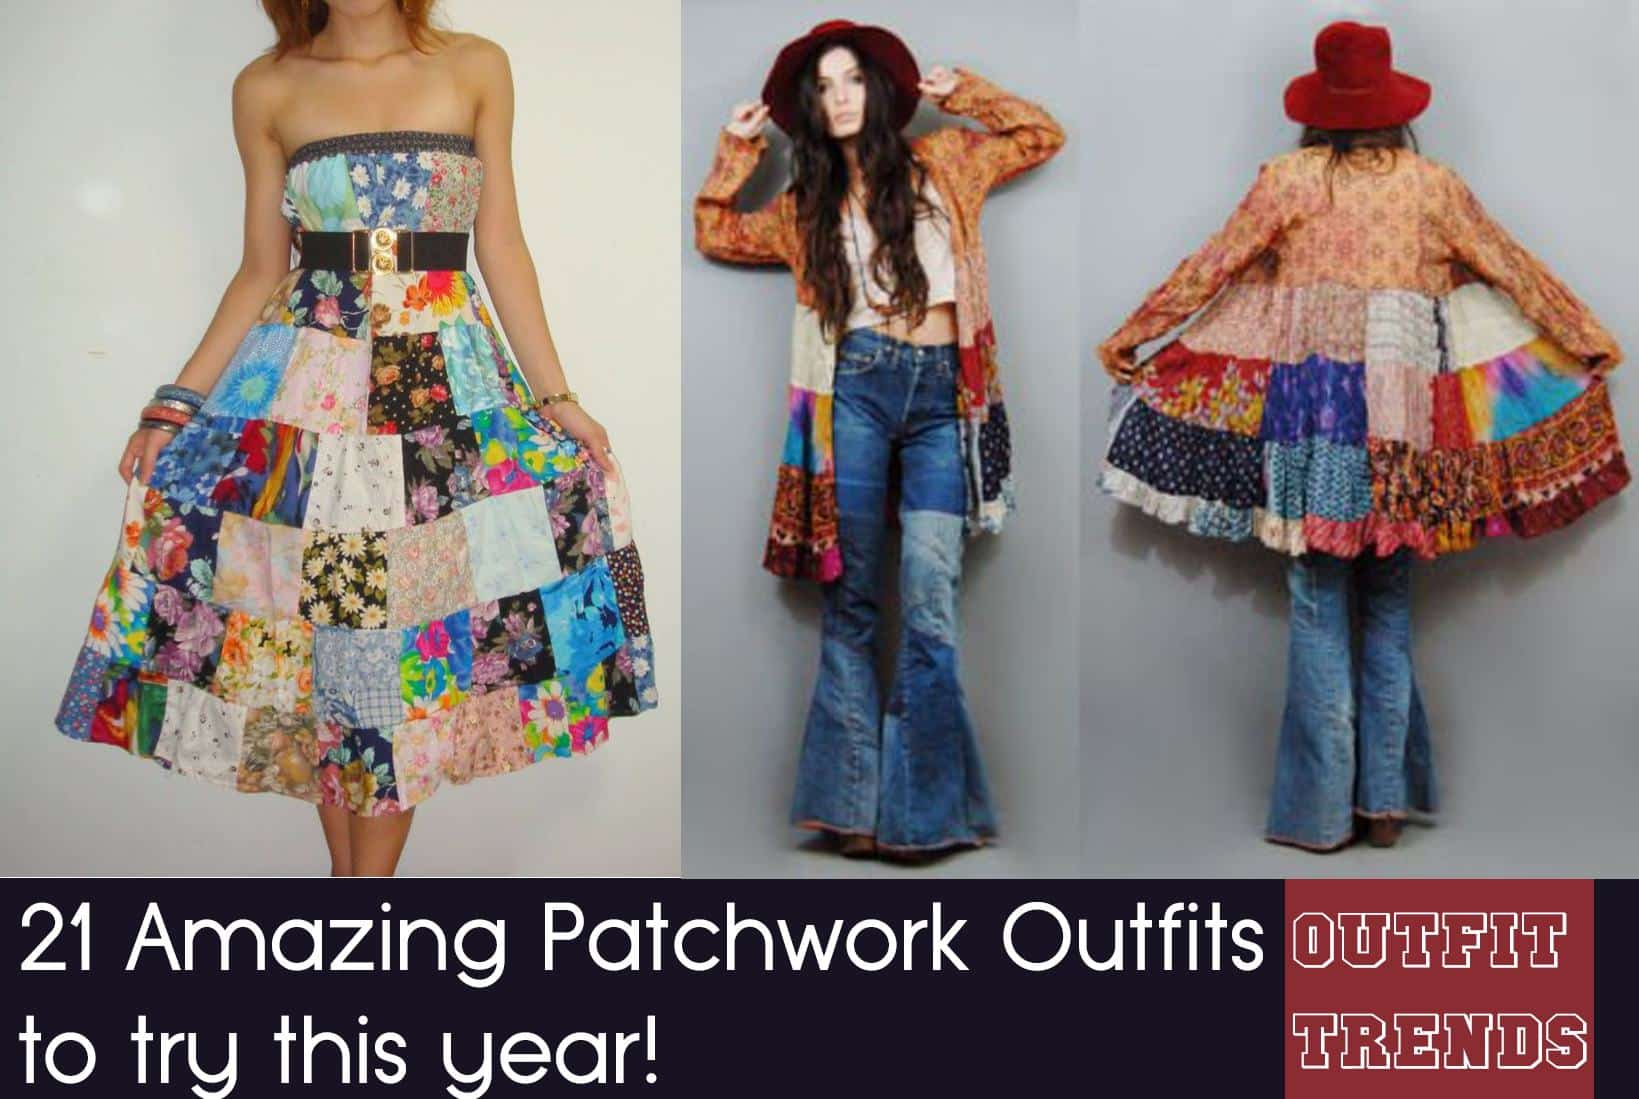 featured-image-for-outfit-trends Patchwork Outfits-21 Ways to Wear Patchwork Outfits this Year